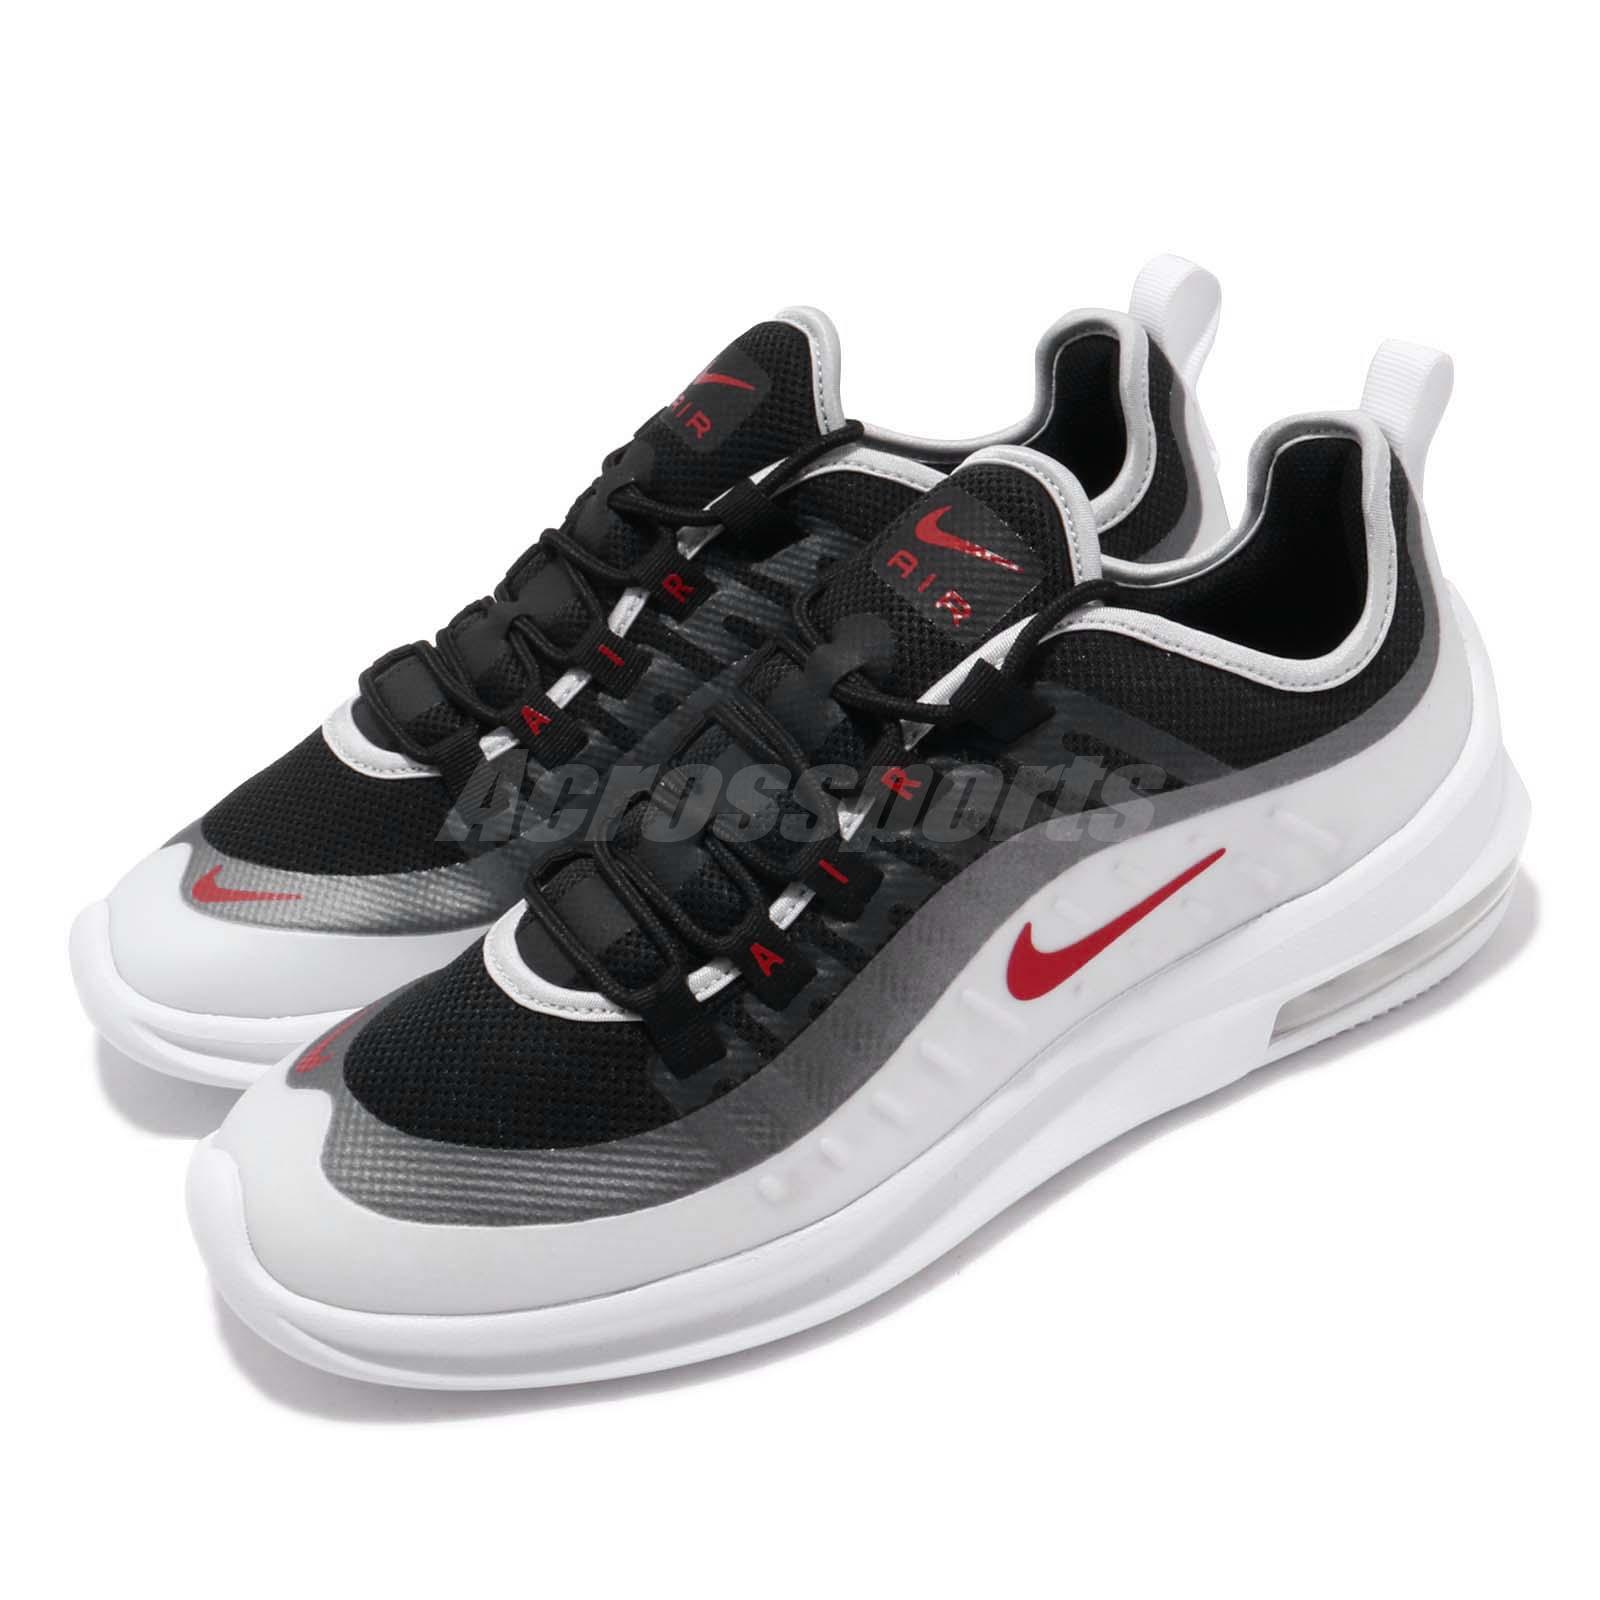 various colors dcd99 15838 Details about Nike Air Max Axis Black White Red Men Running Casual Shoes  Sneakers AA2146-009